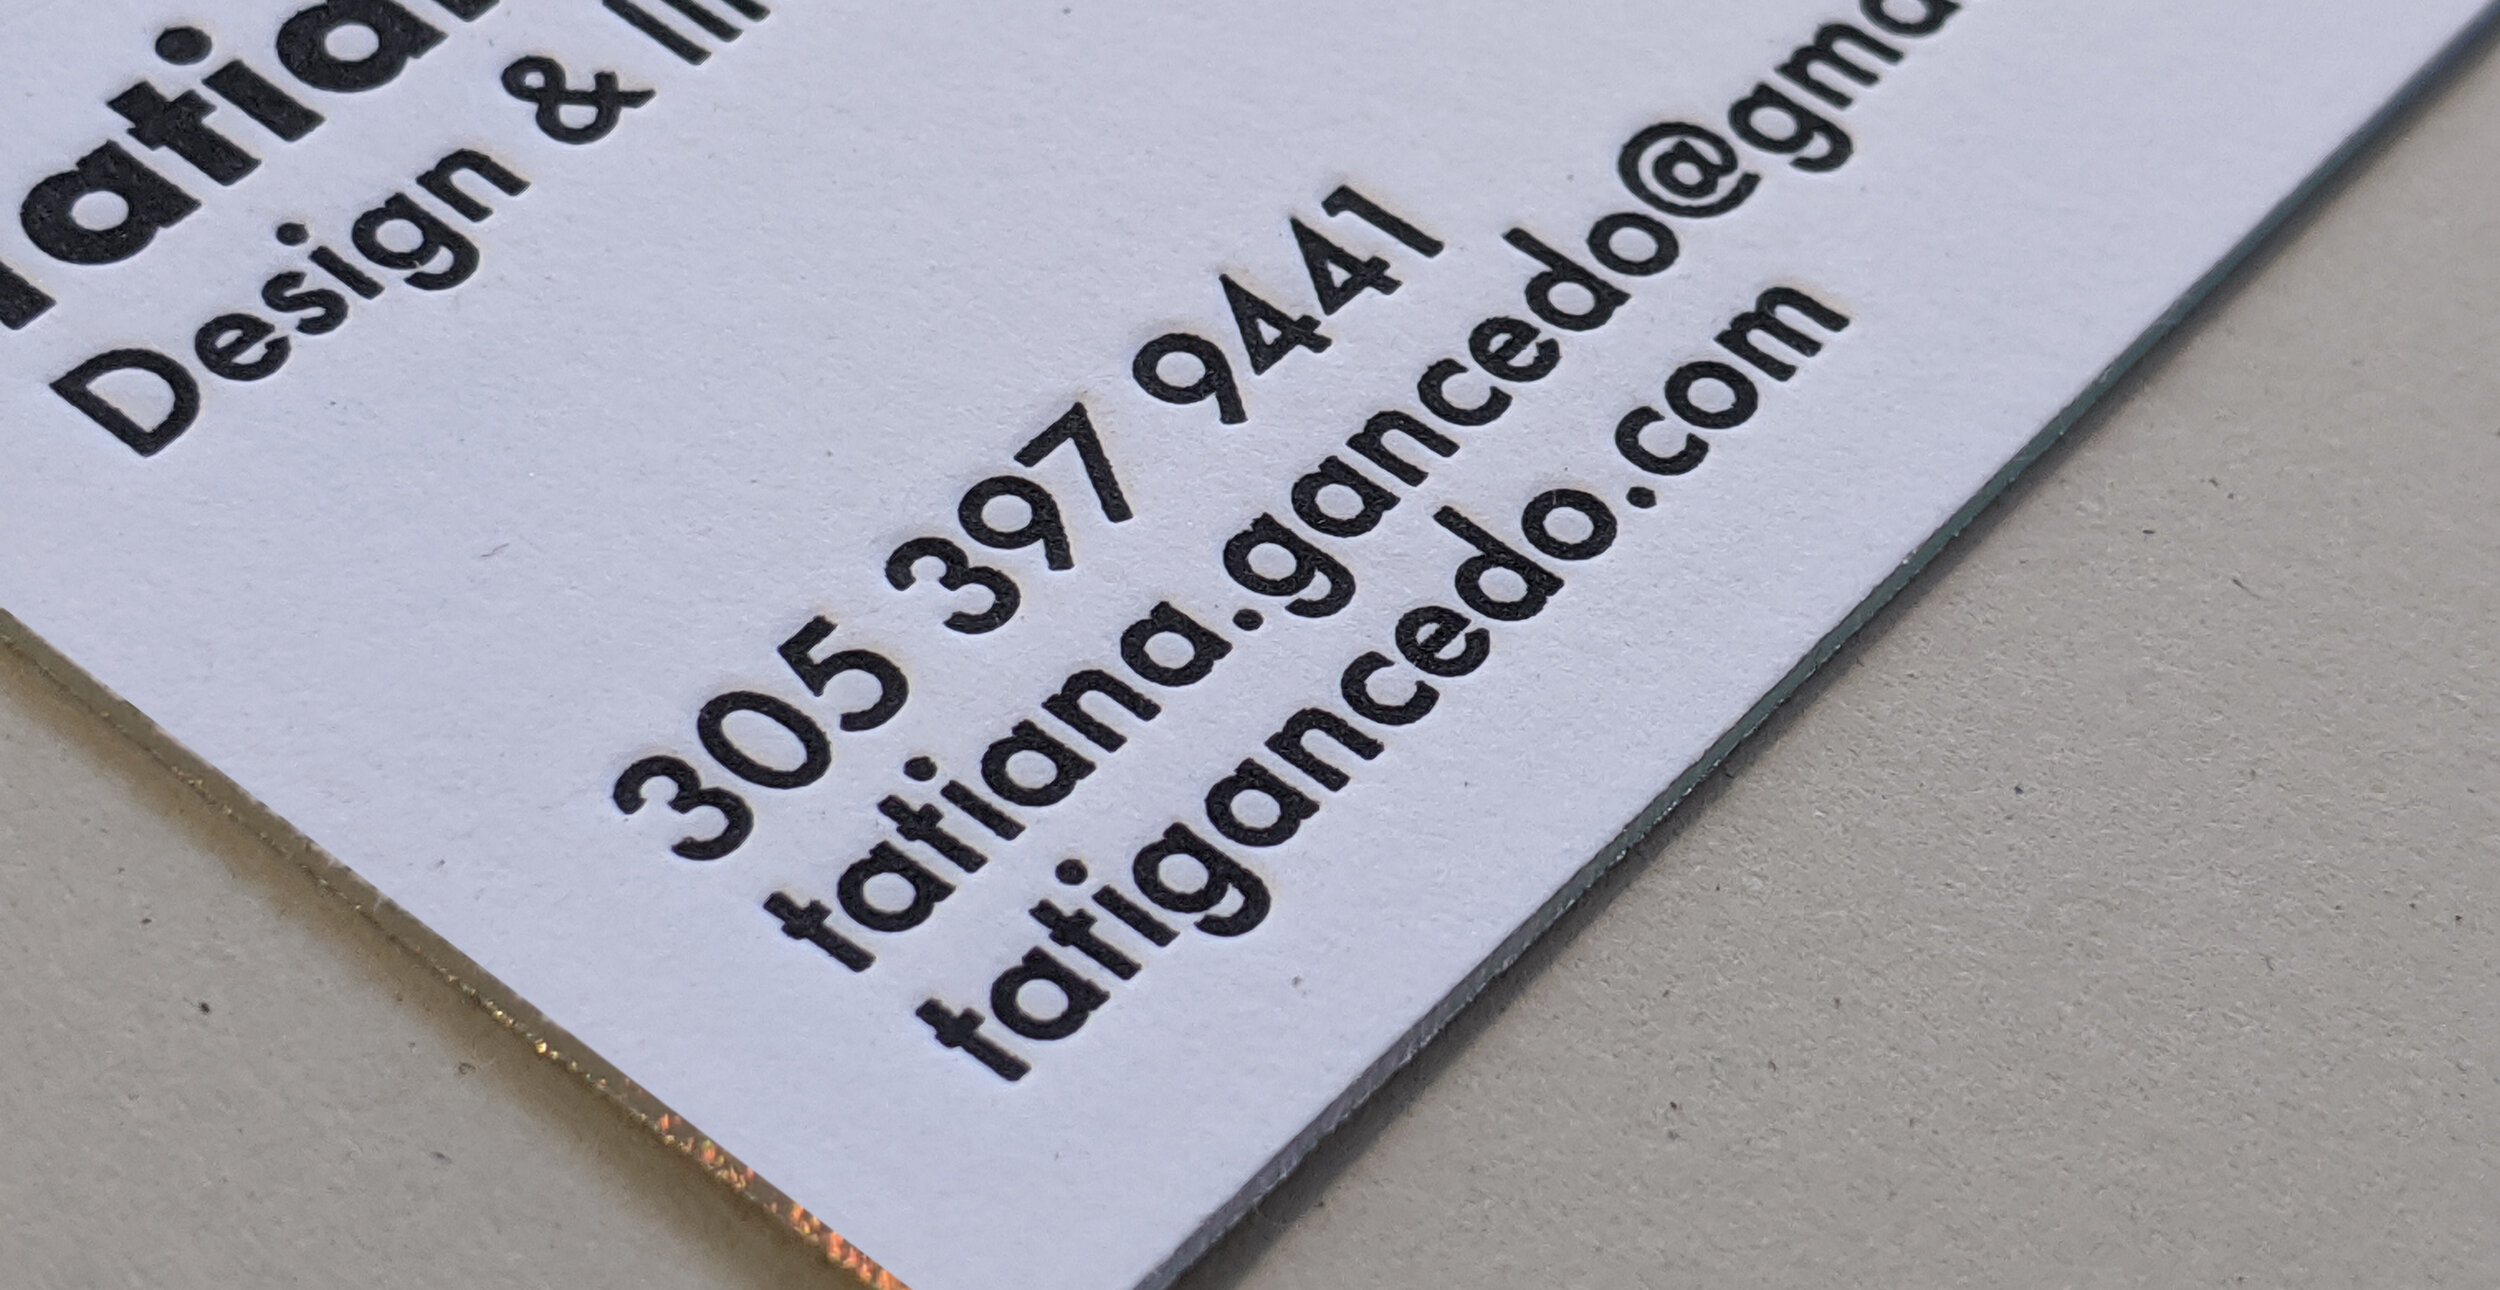 1 color letterpress on 220# flo white lettra and holographic gilded edges